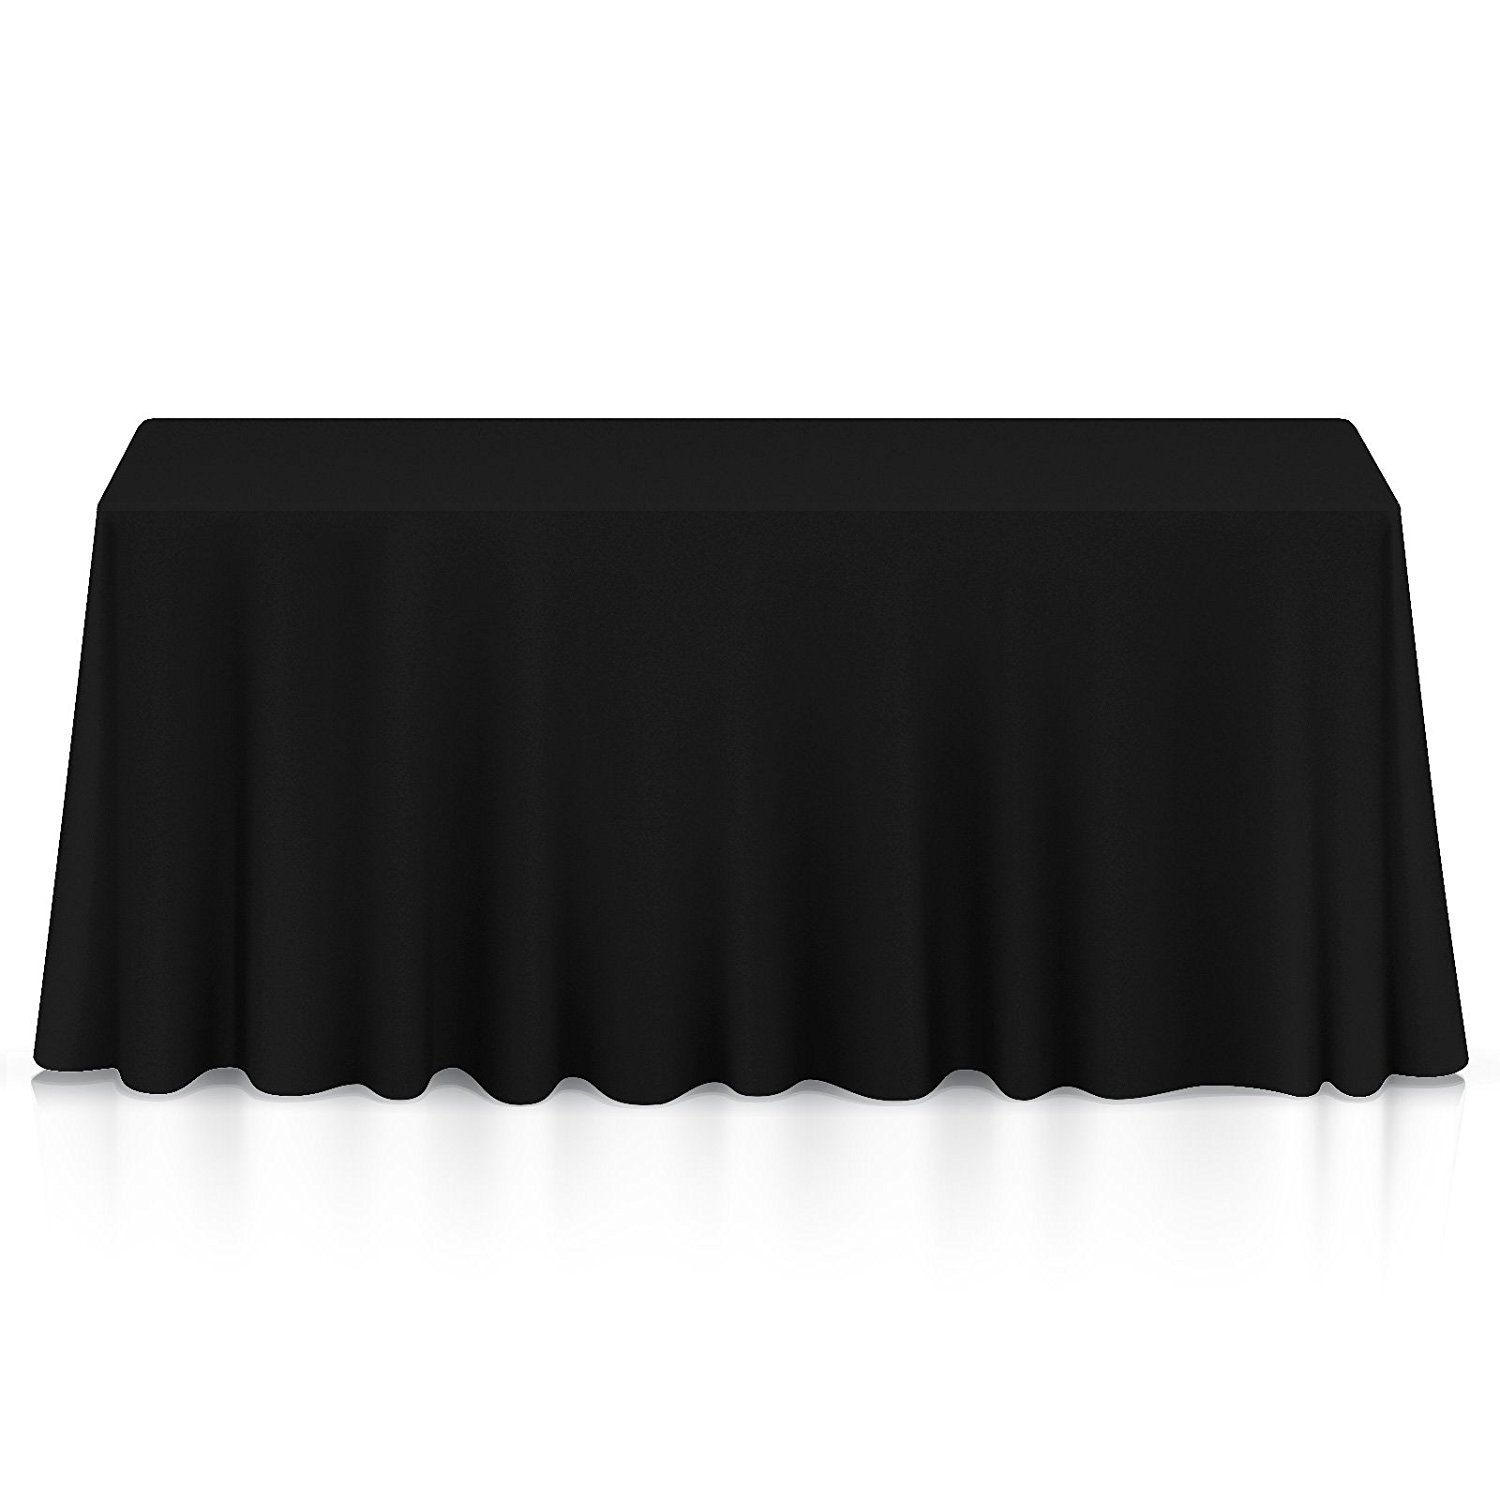 Black Rectangle Tablecloth with Linen Banquet Poly Seamless Tablecloth for Restaurant, Dining, Birthday, Candlelight Dinner, Party, Wedding, 70x144 Inch Chancery Chair Cover